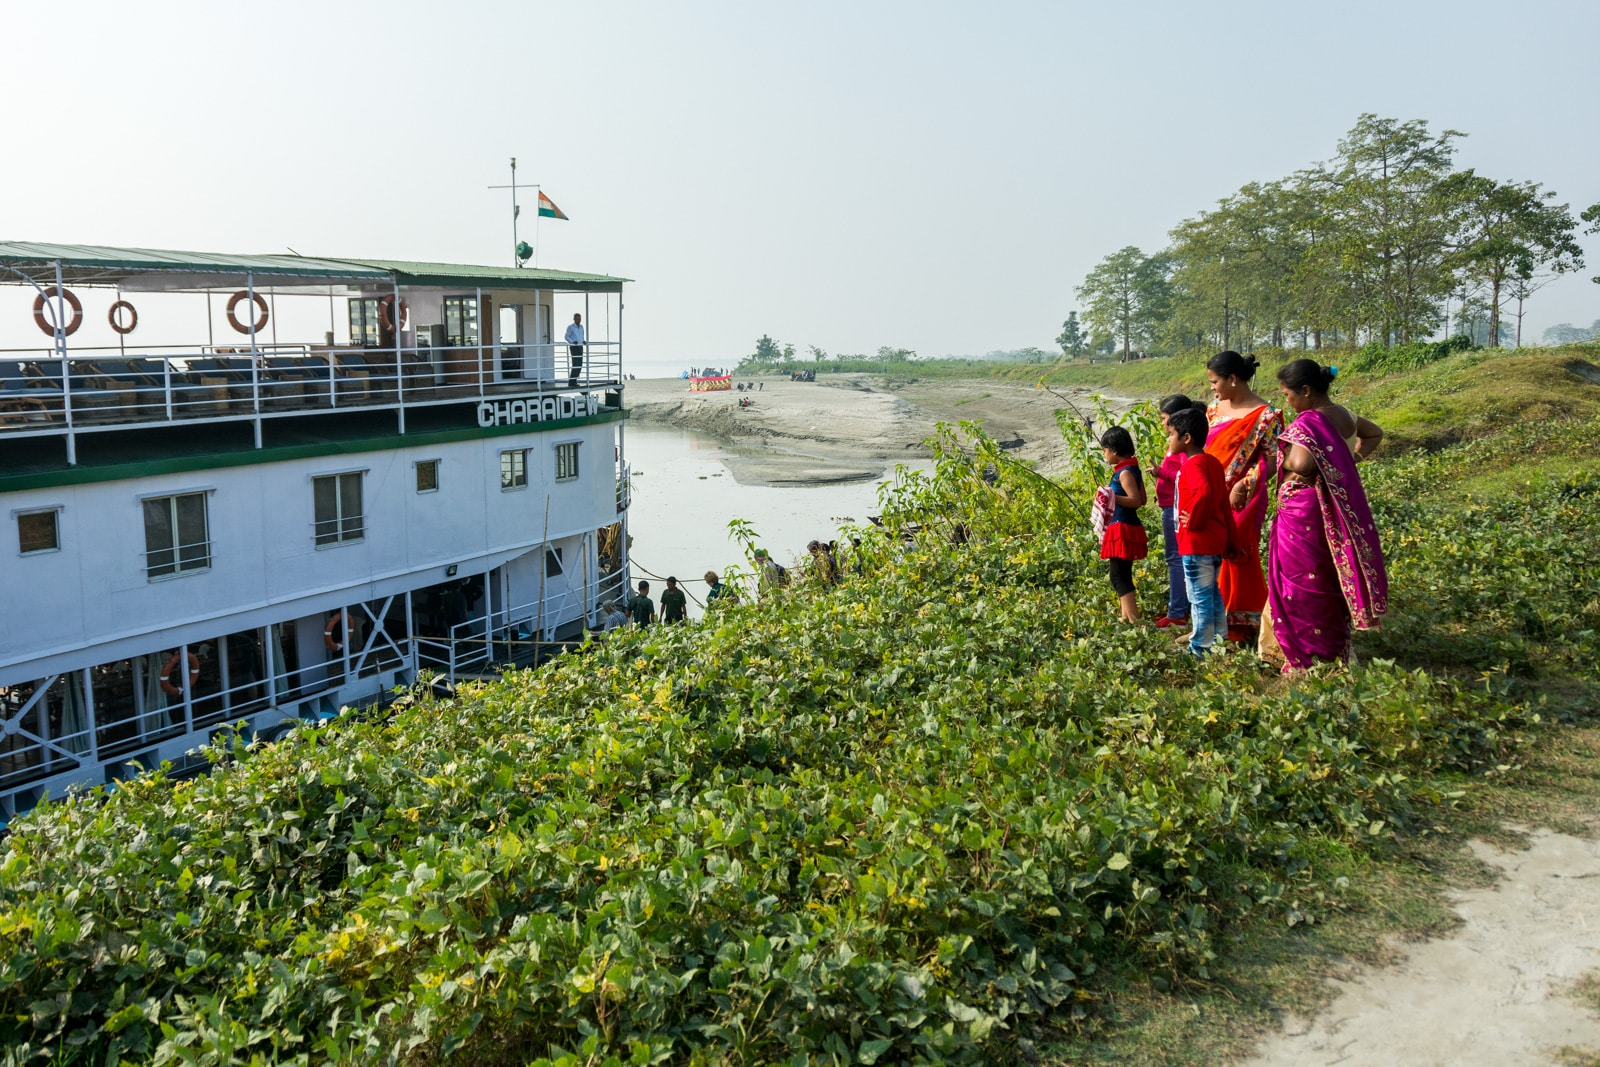 River cruise in India with Assam Bengal Navigation - Local women checking out the cruise boat - Lost With Purpose travel blog